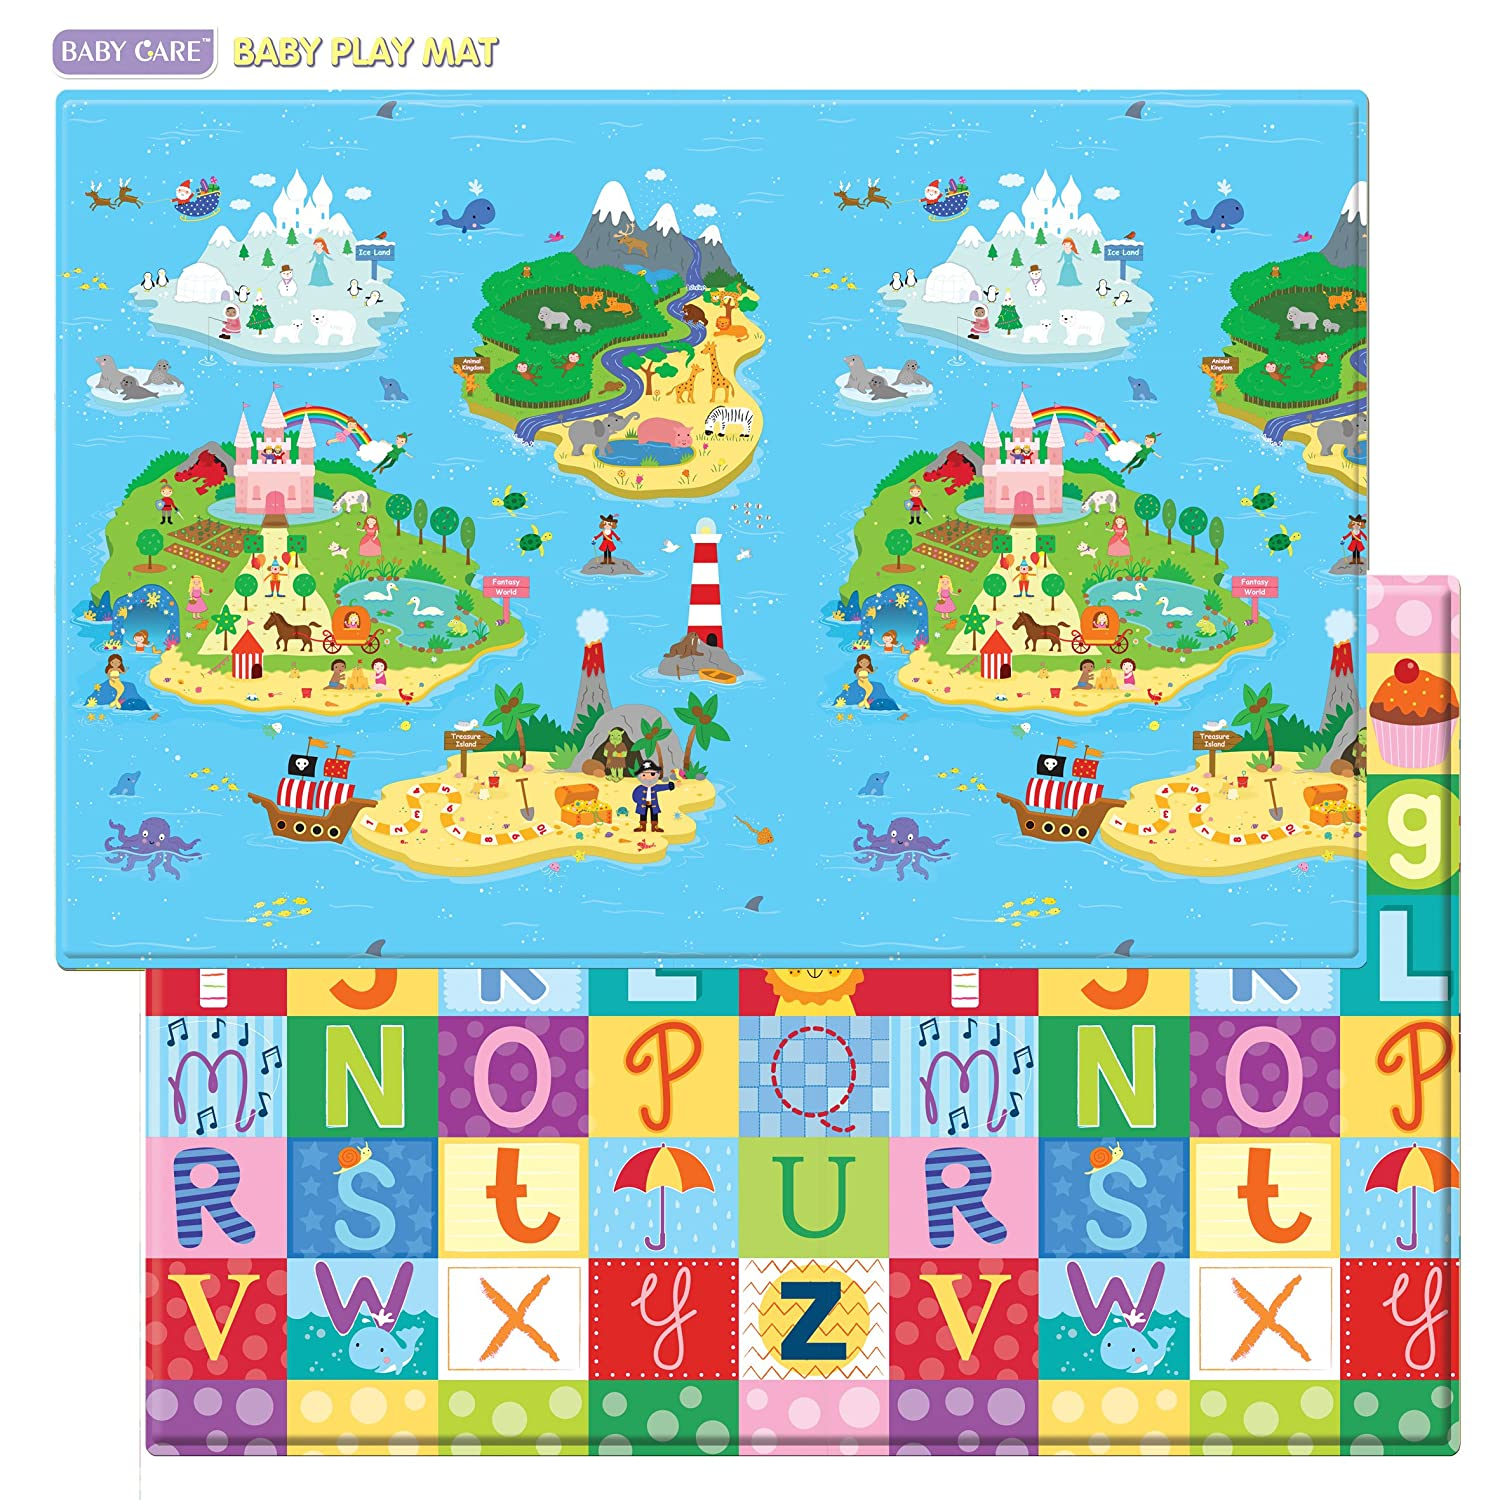 Baby Care Play Mat (83 x 55 x 0.5 inches) baby care super atv 551